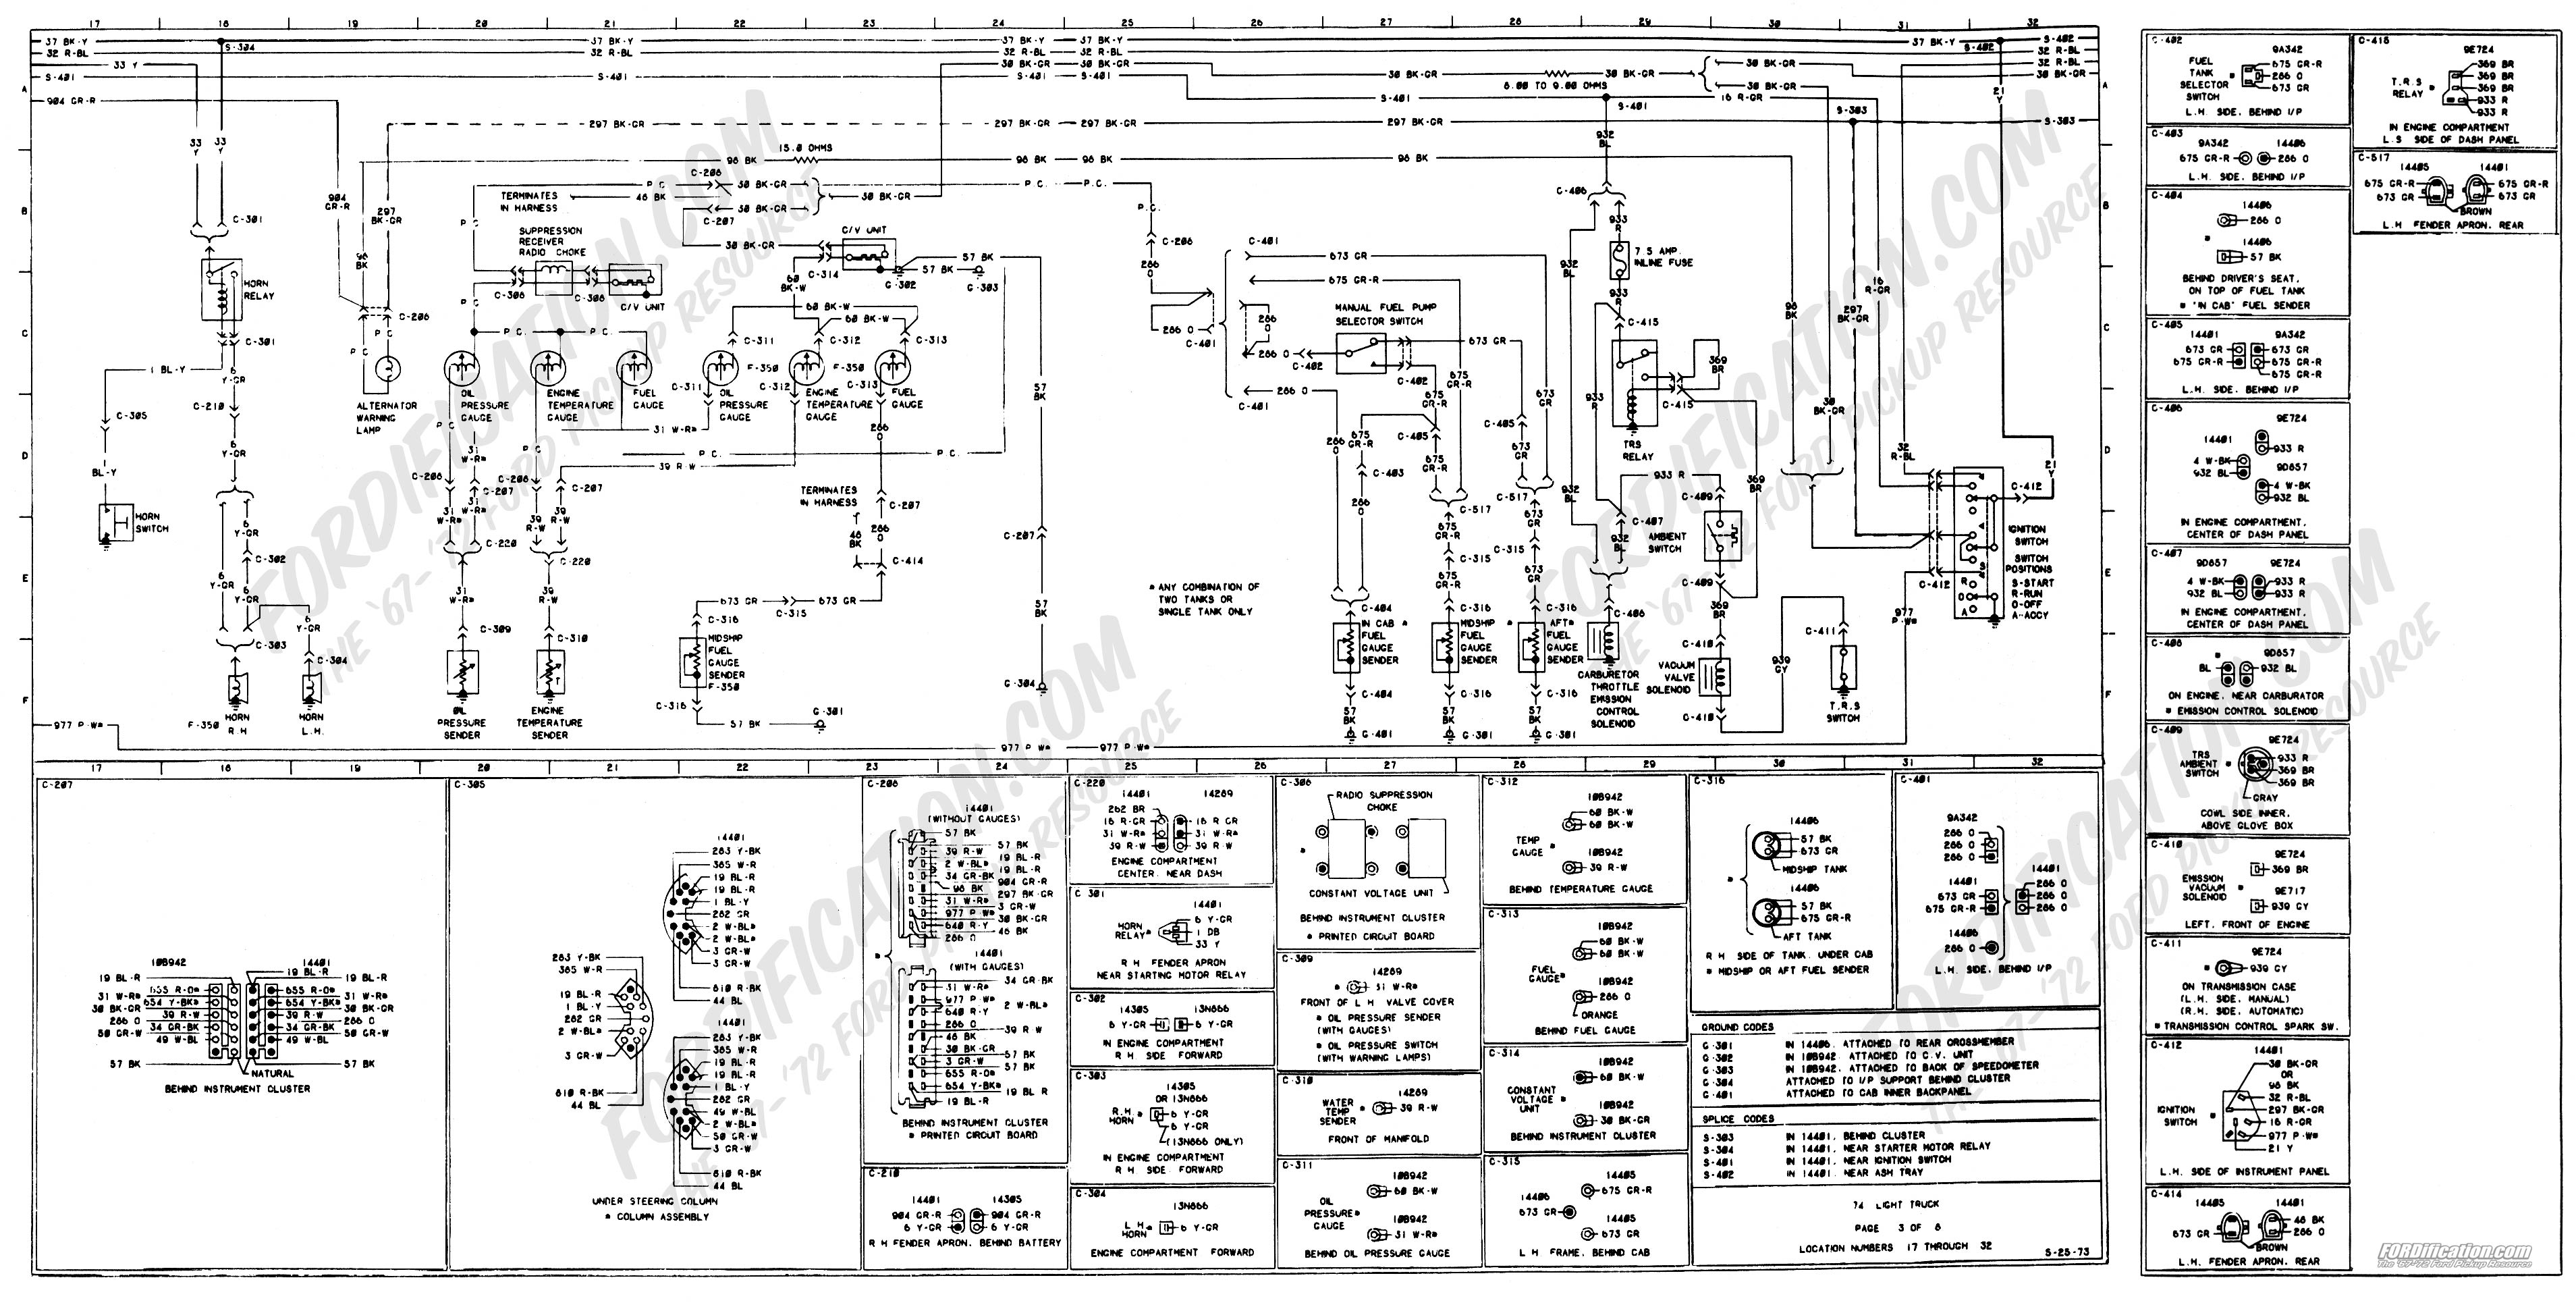 94 f350 wiring diagrams wiring library 2000 ford f350 headlight wiring diagram 1974 f250 wiring diagram opinions about wiring diagram \\u2022 2004 f350 suspension diagram 2004 f350